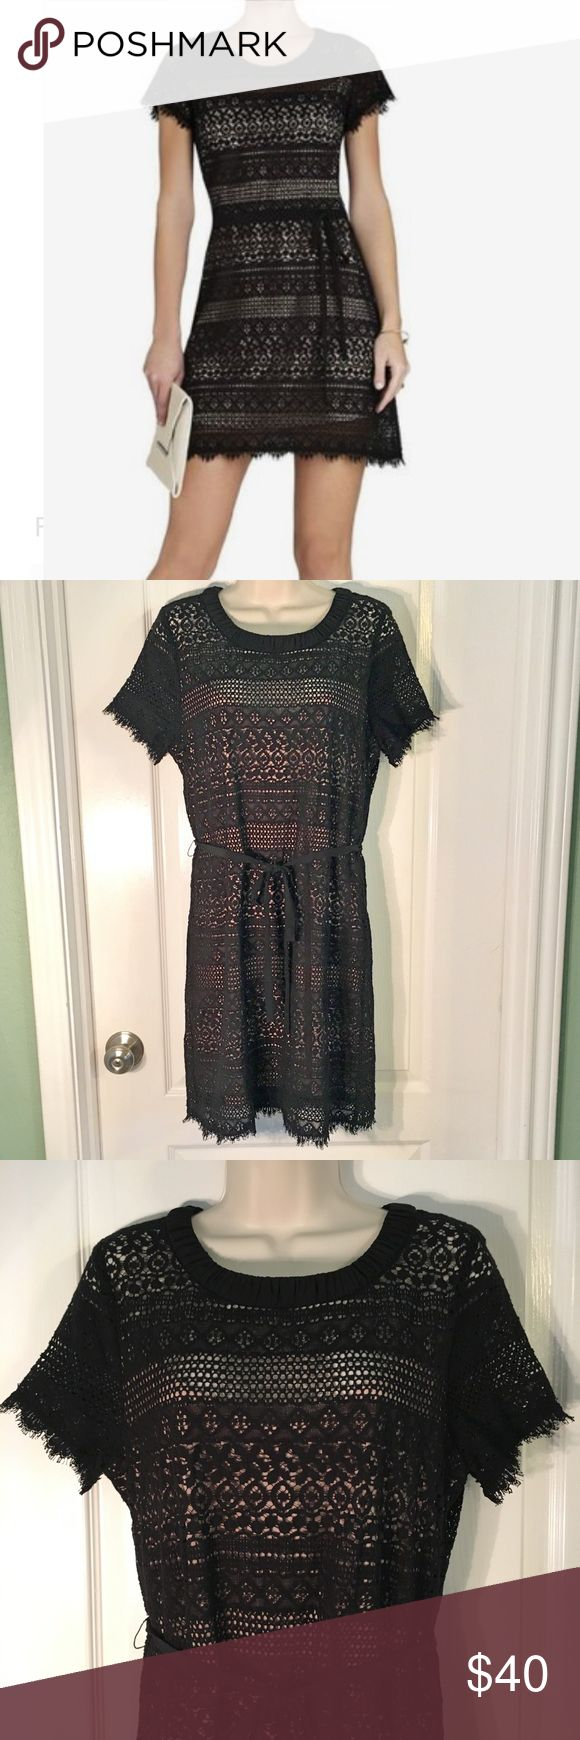 """BCBG Max Azria Cocktail Dress BCBG Max Azria Cocktail Dress ~ Black Lace With Nude Silk Slip ~ Size 8 ~ UA to UA is approximately 19"""" ~ Waist is approximately 16 1/2"""" ~ Length is approximately 35"""" ~ Handwash ~ Fabric is 76% Cotton & 24% Nylon / 100% Silk ~ Only flaw is on Slip - Light Black Spots - See last picture ~ Absolutely Beautiful Dress BCBGMaxAzria Dresses"""